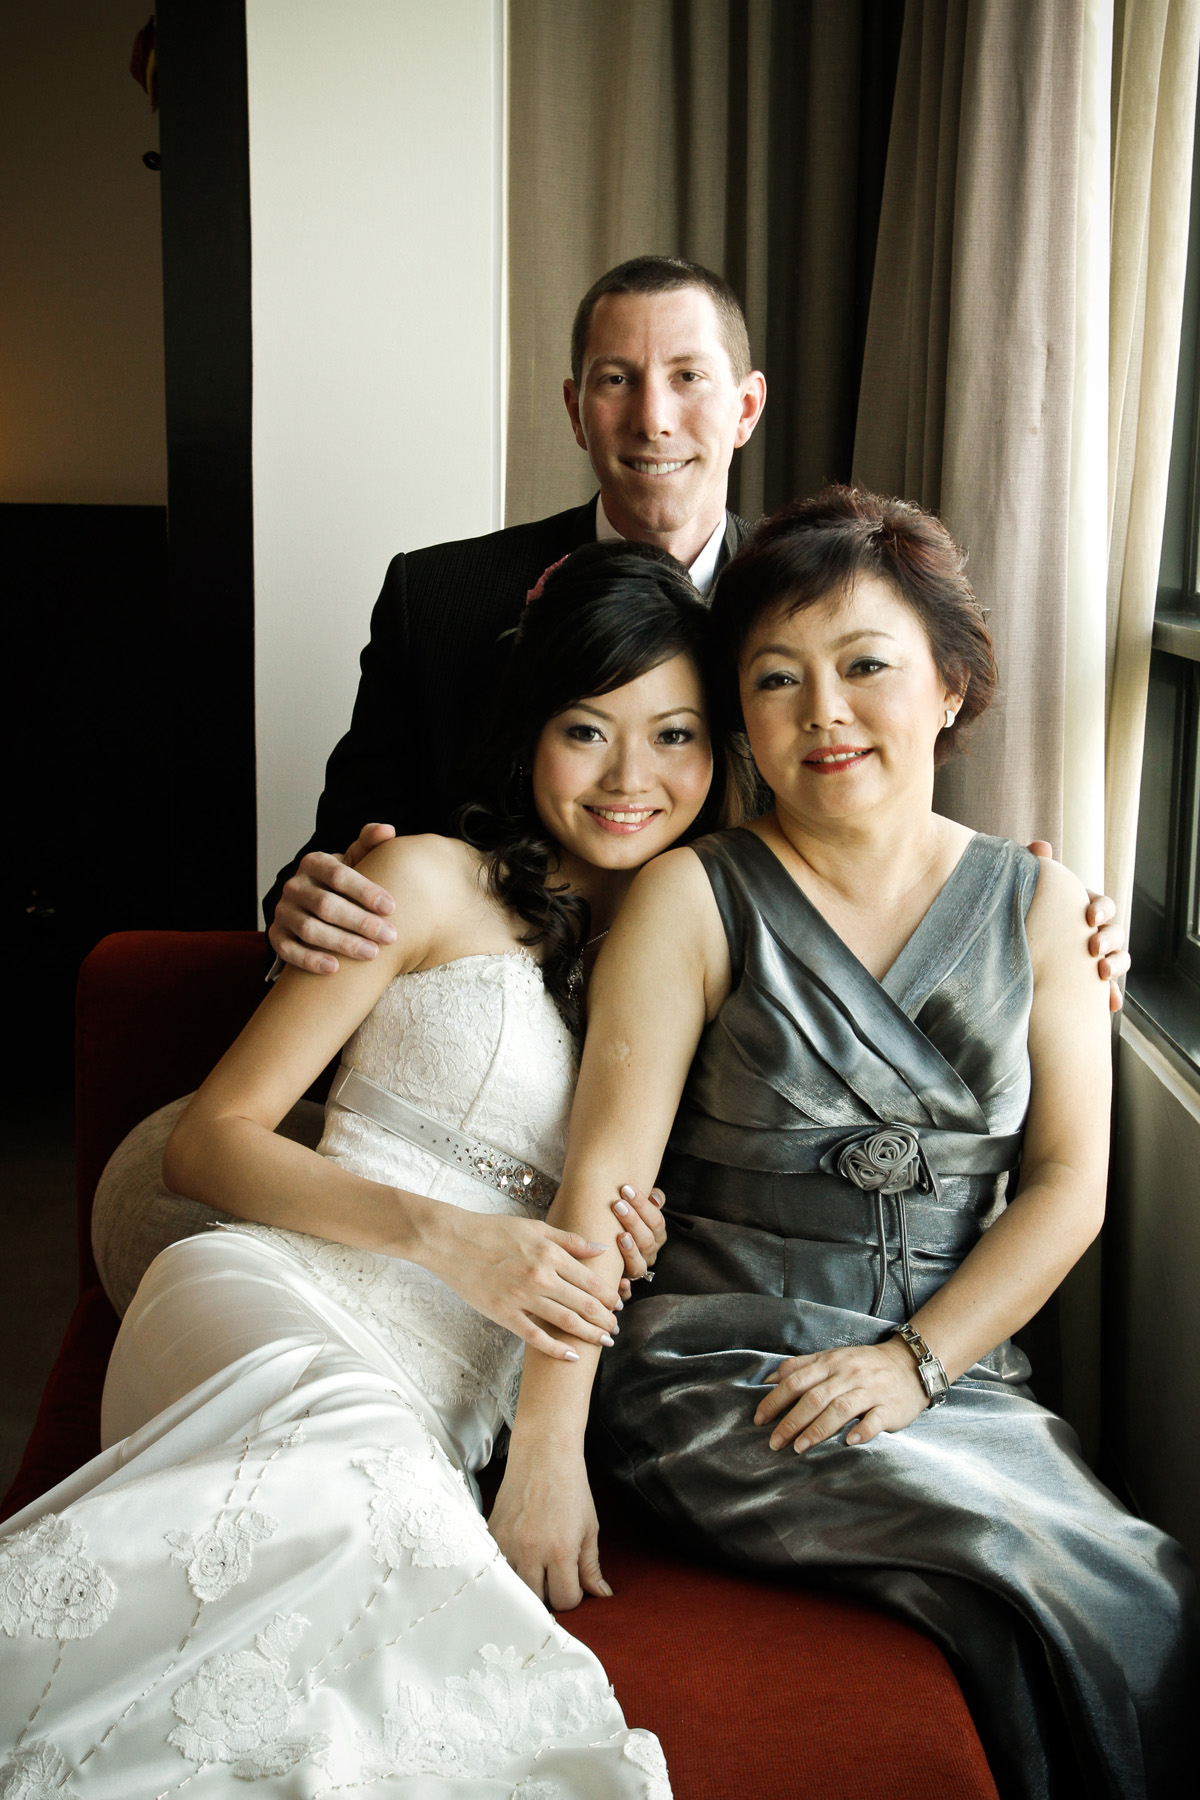 Jeff, Celeste and her mother